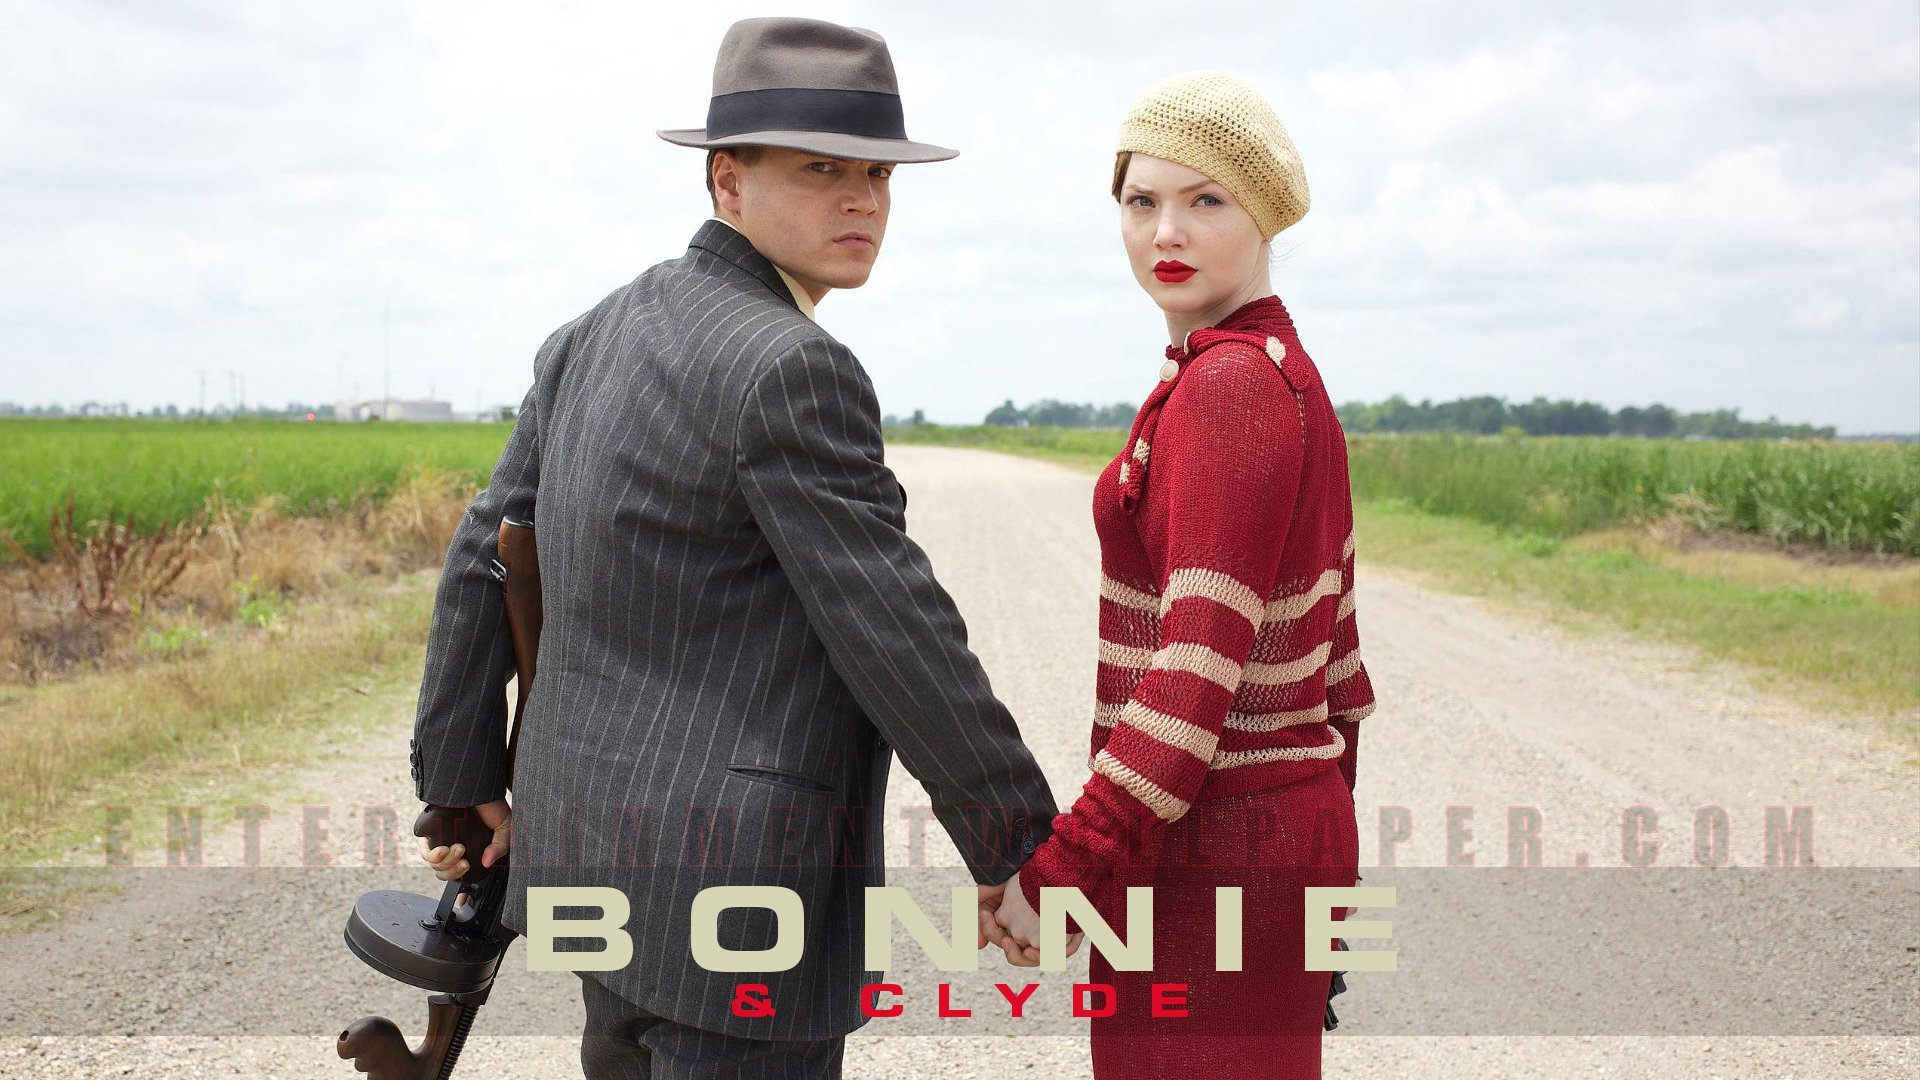 49 Bonnie And Clyde Wallpaper On Wallpapersafari